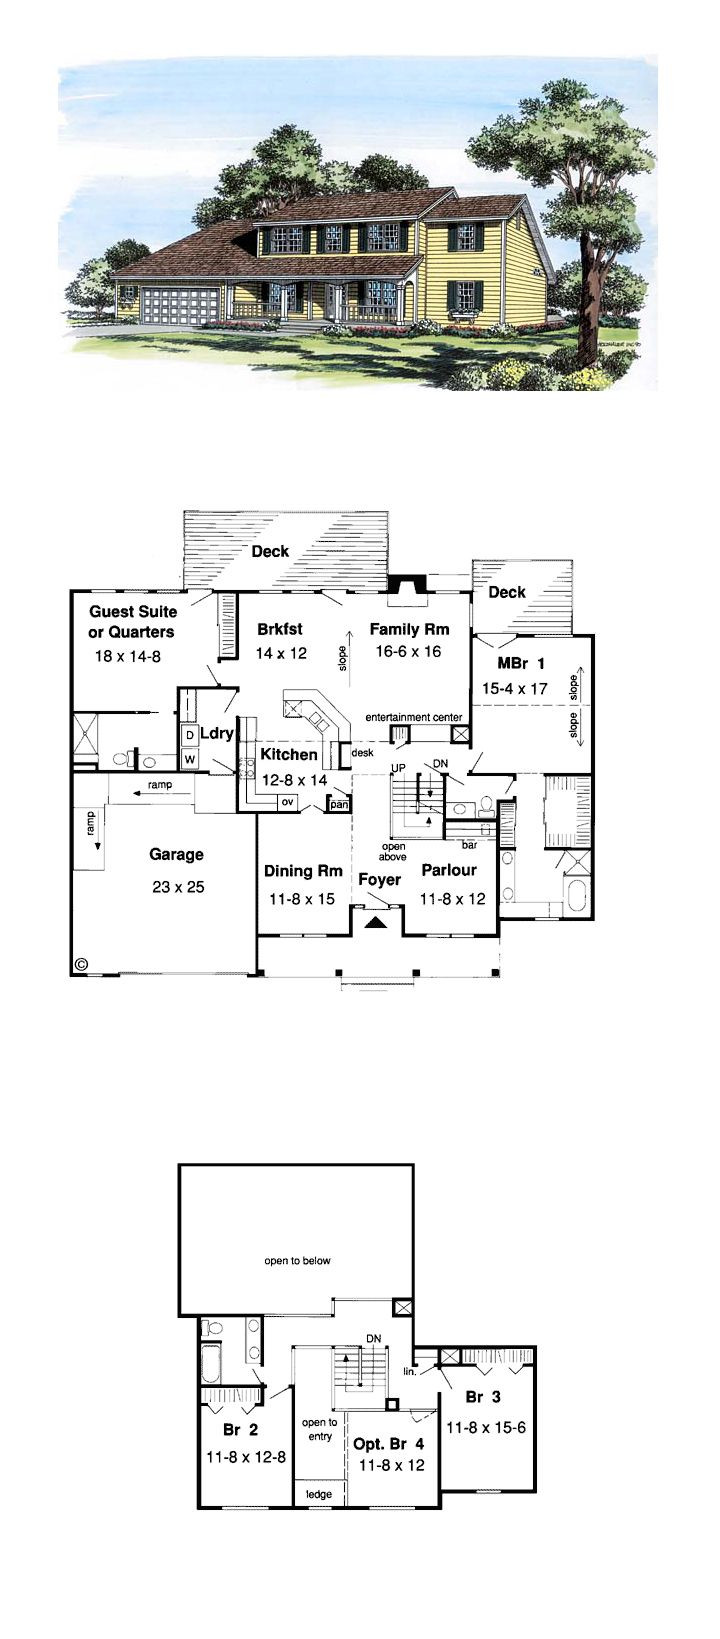 5 bedroom 3 bathroom house plans - Colonial Country Saltbox House Plan 20404